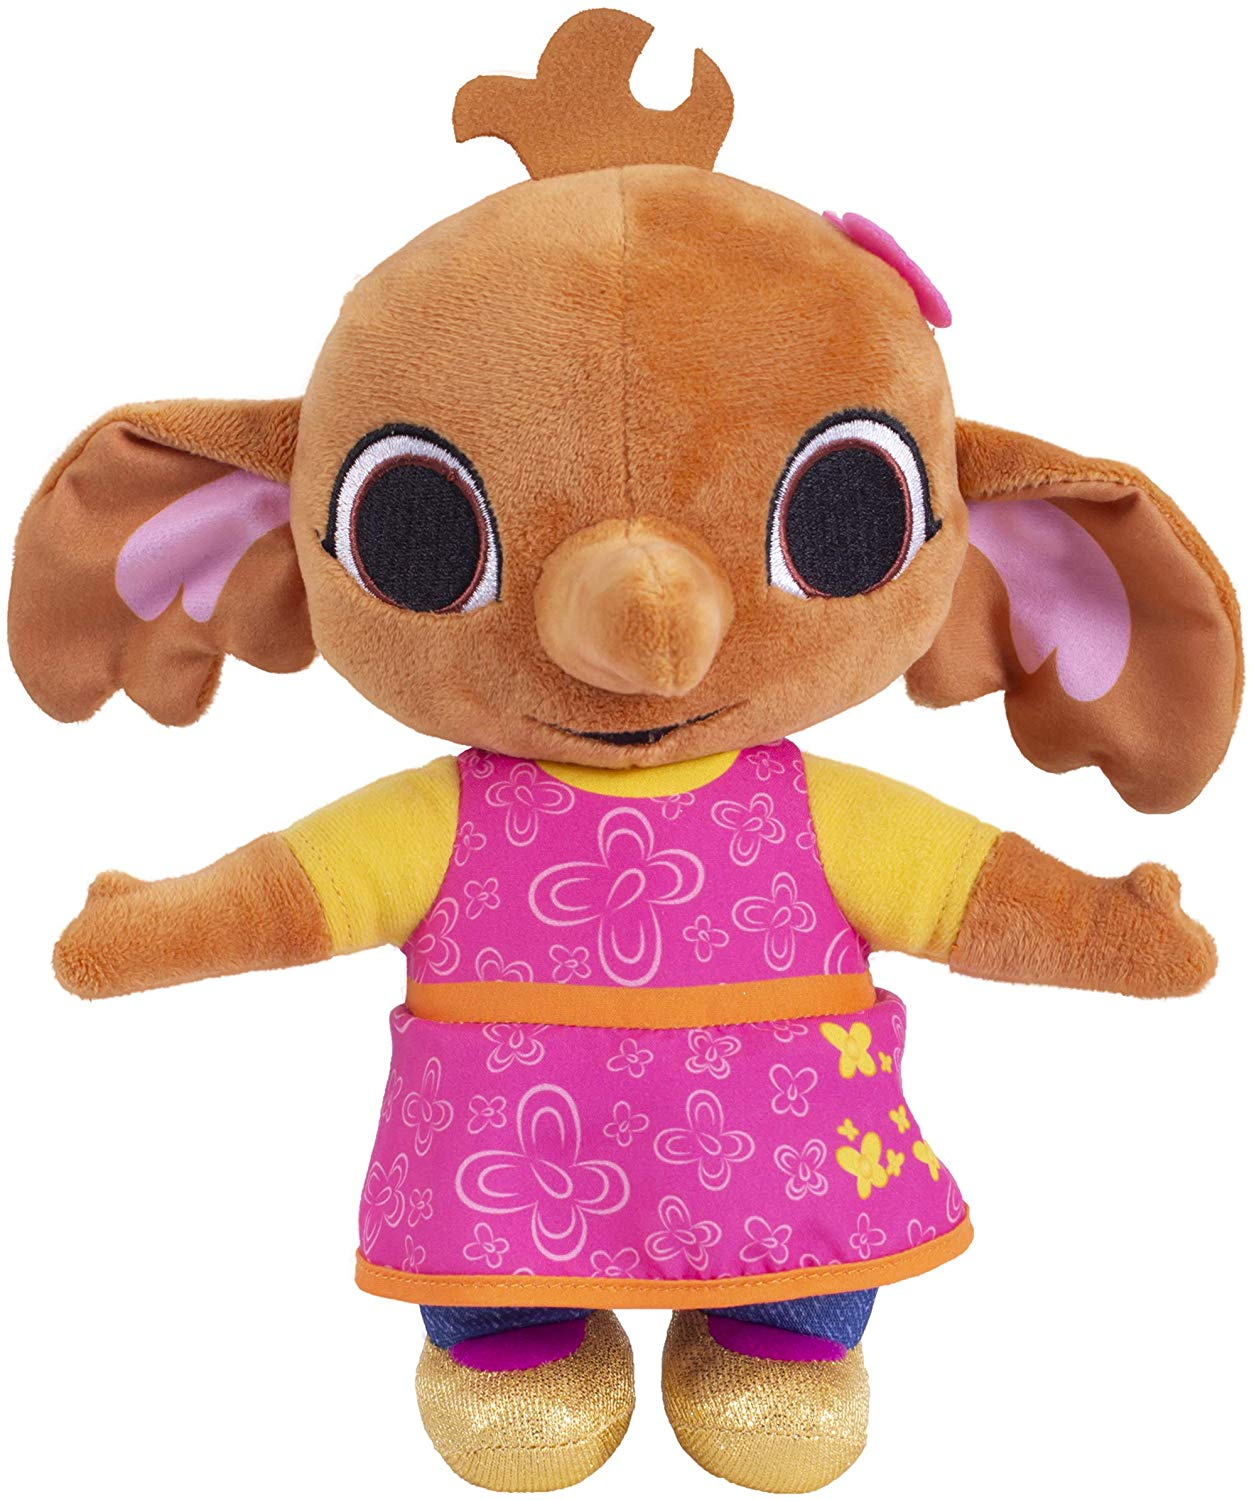 Bing Huggable Talking Sula Soft Toy